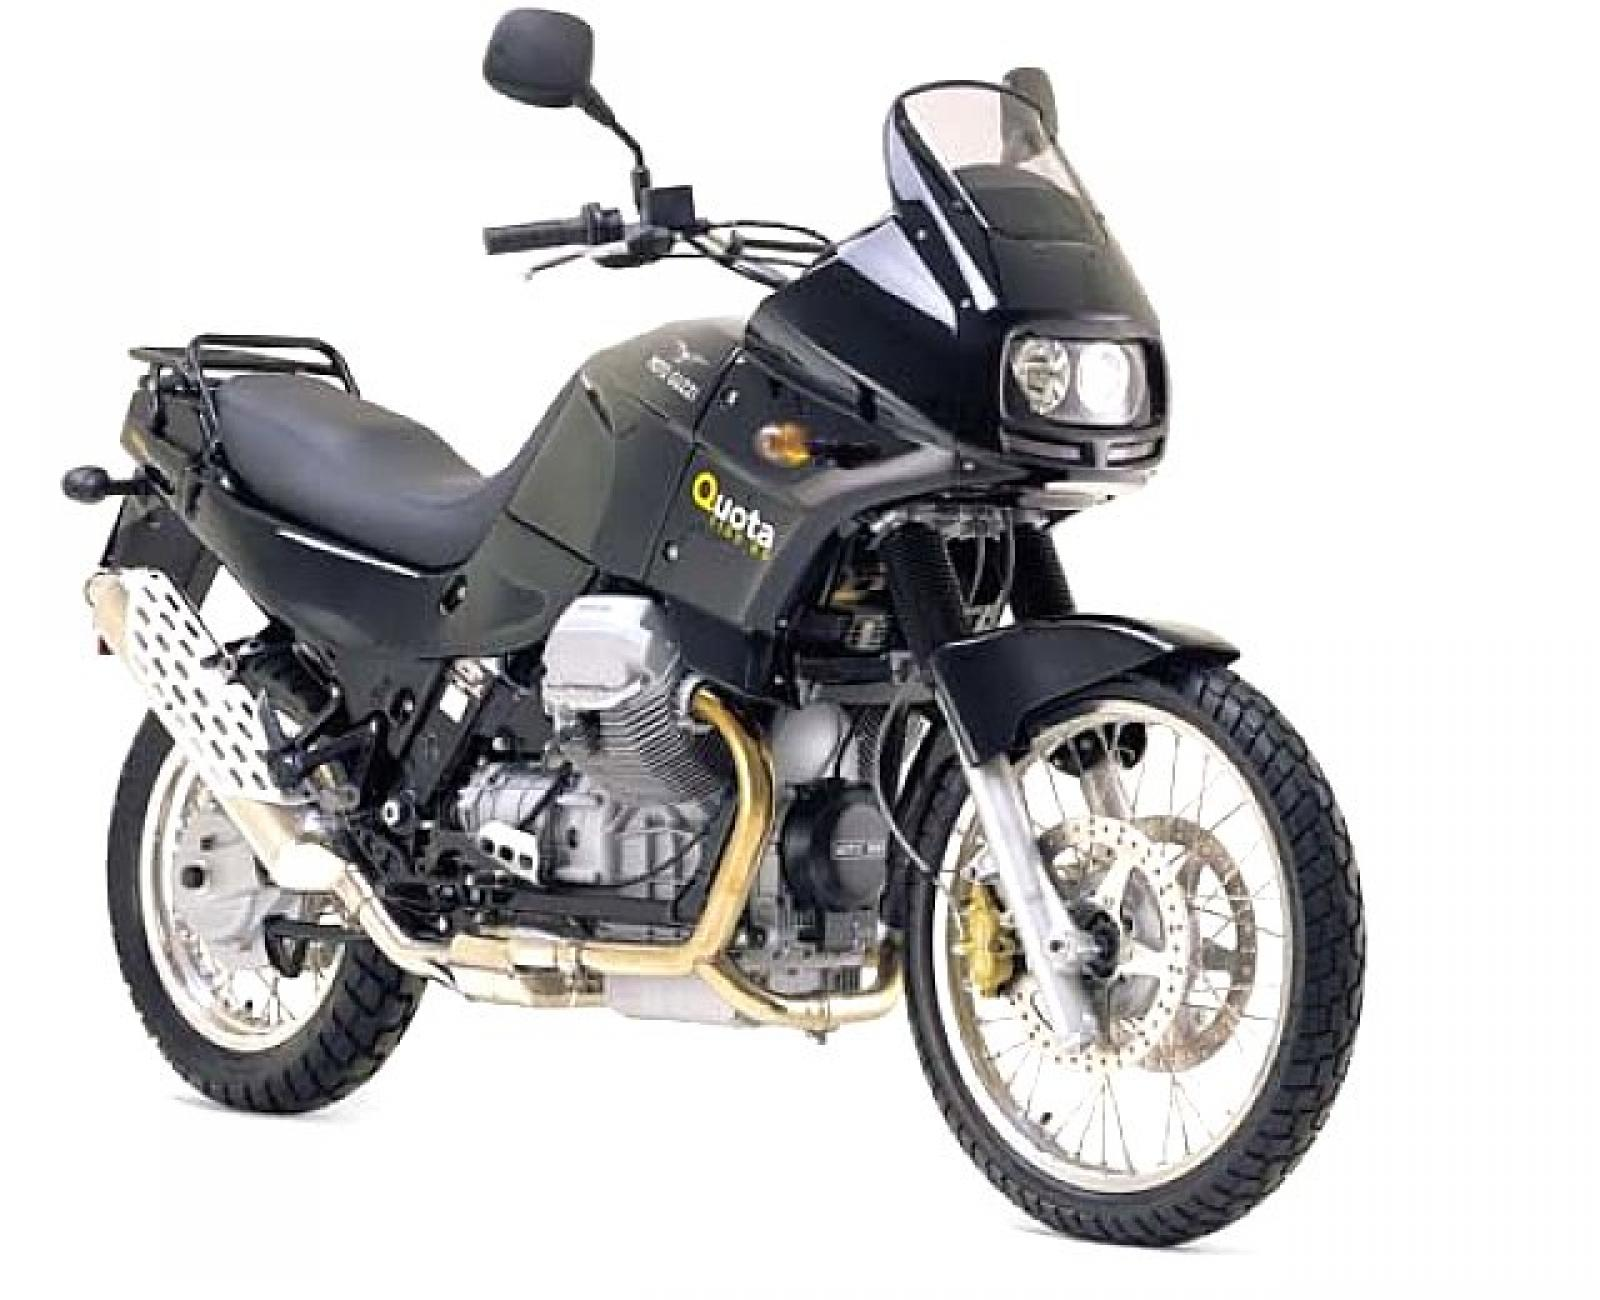 Moto Guzzi Quota 1100 ES 1998 images #145176